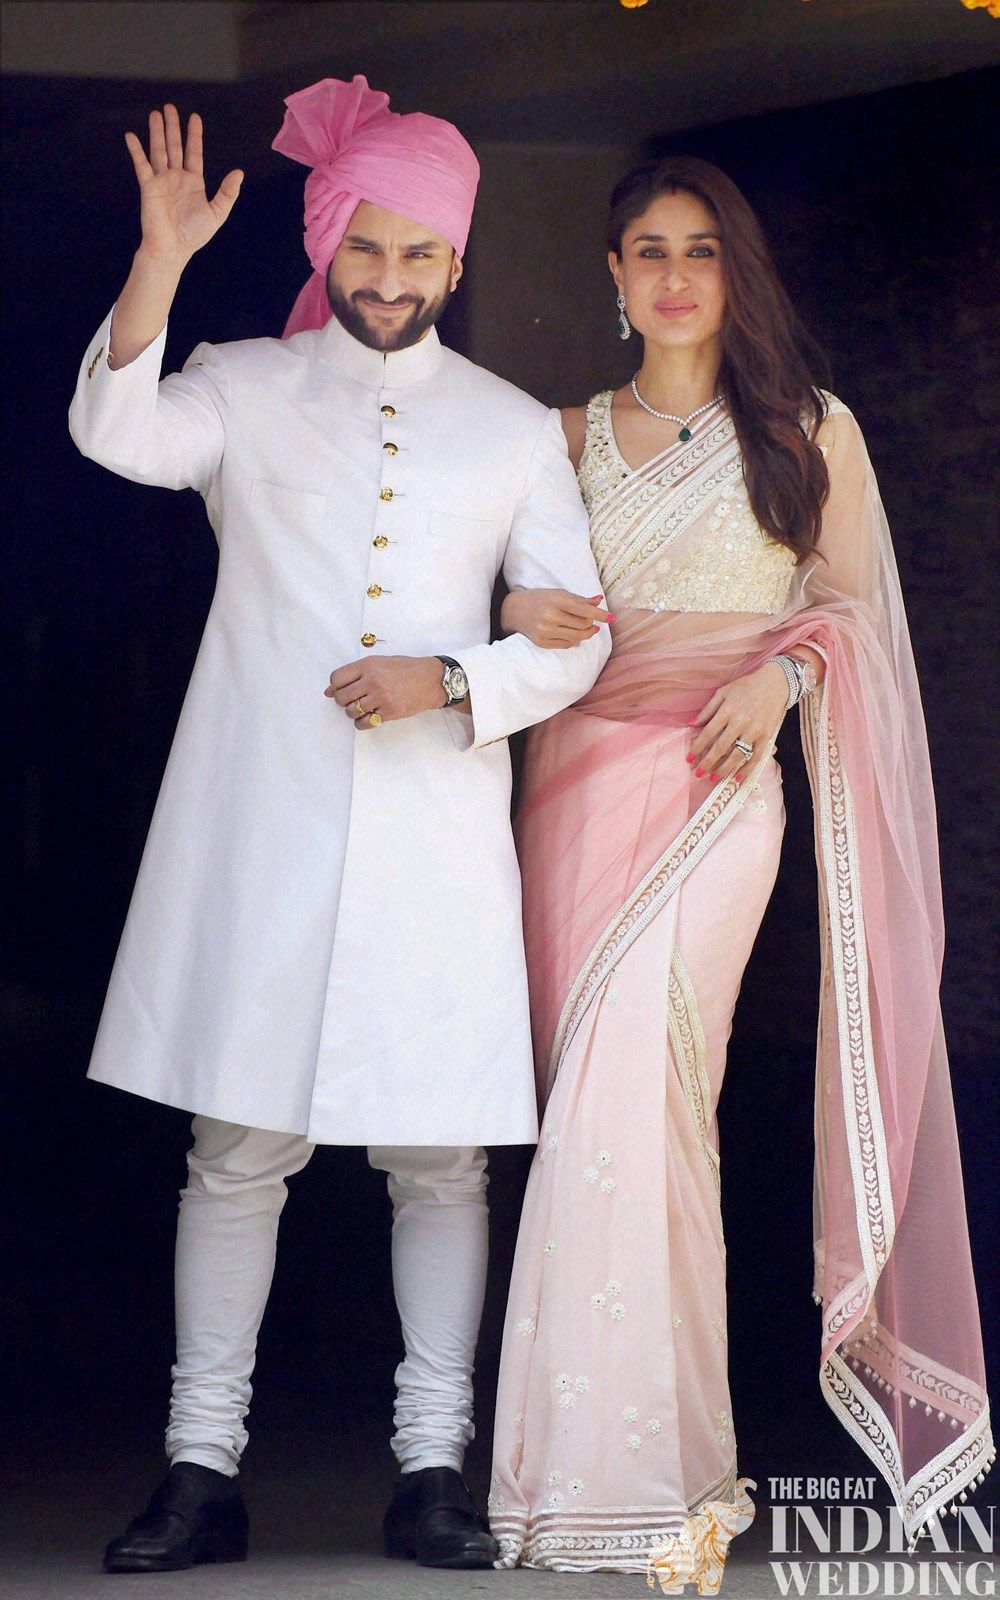 Saif Ali Khan S Nawabi Sherwani Style Along Wit Kareena Kapoor Simple Yet Elegant Pink And White Sari